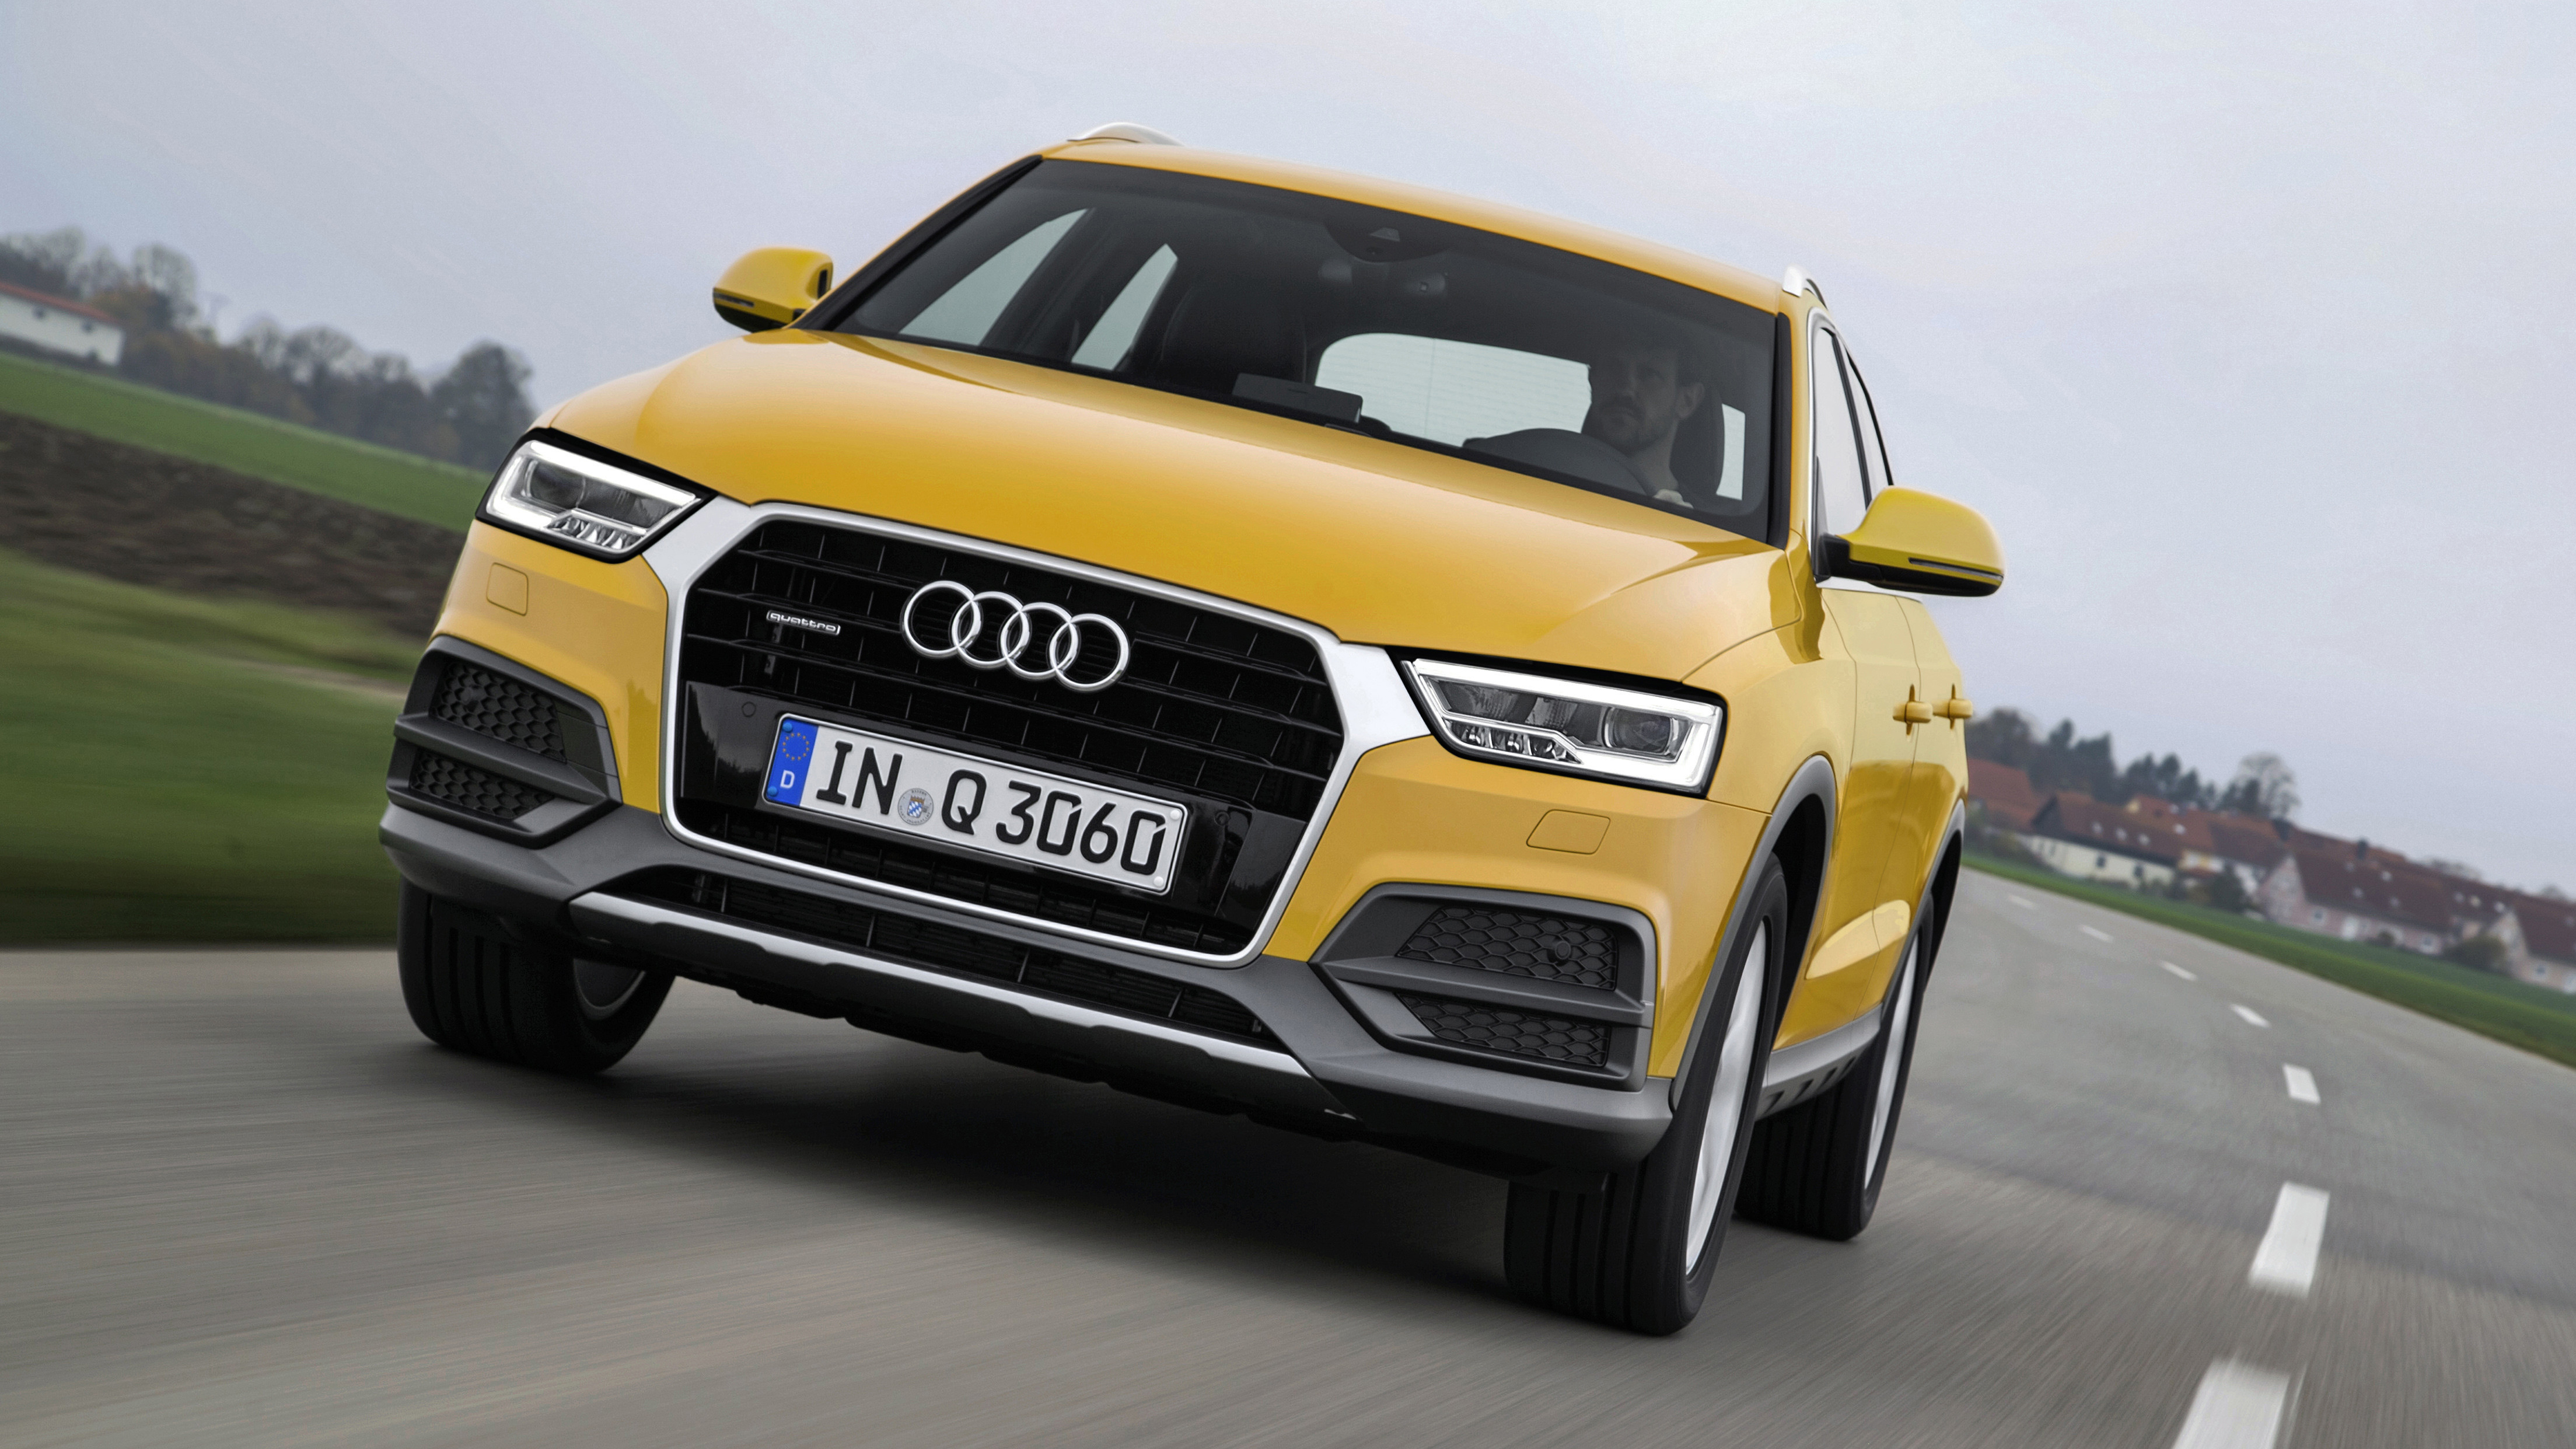 gallery announced audi image photo side view news suv rear features